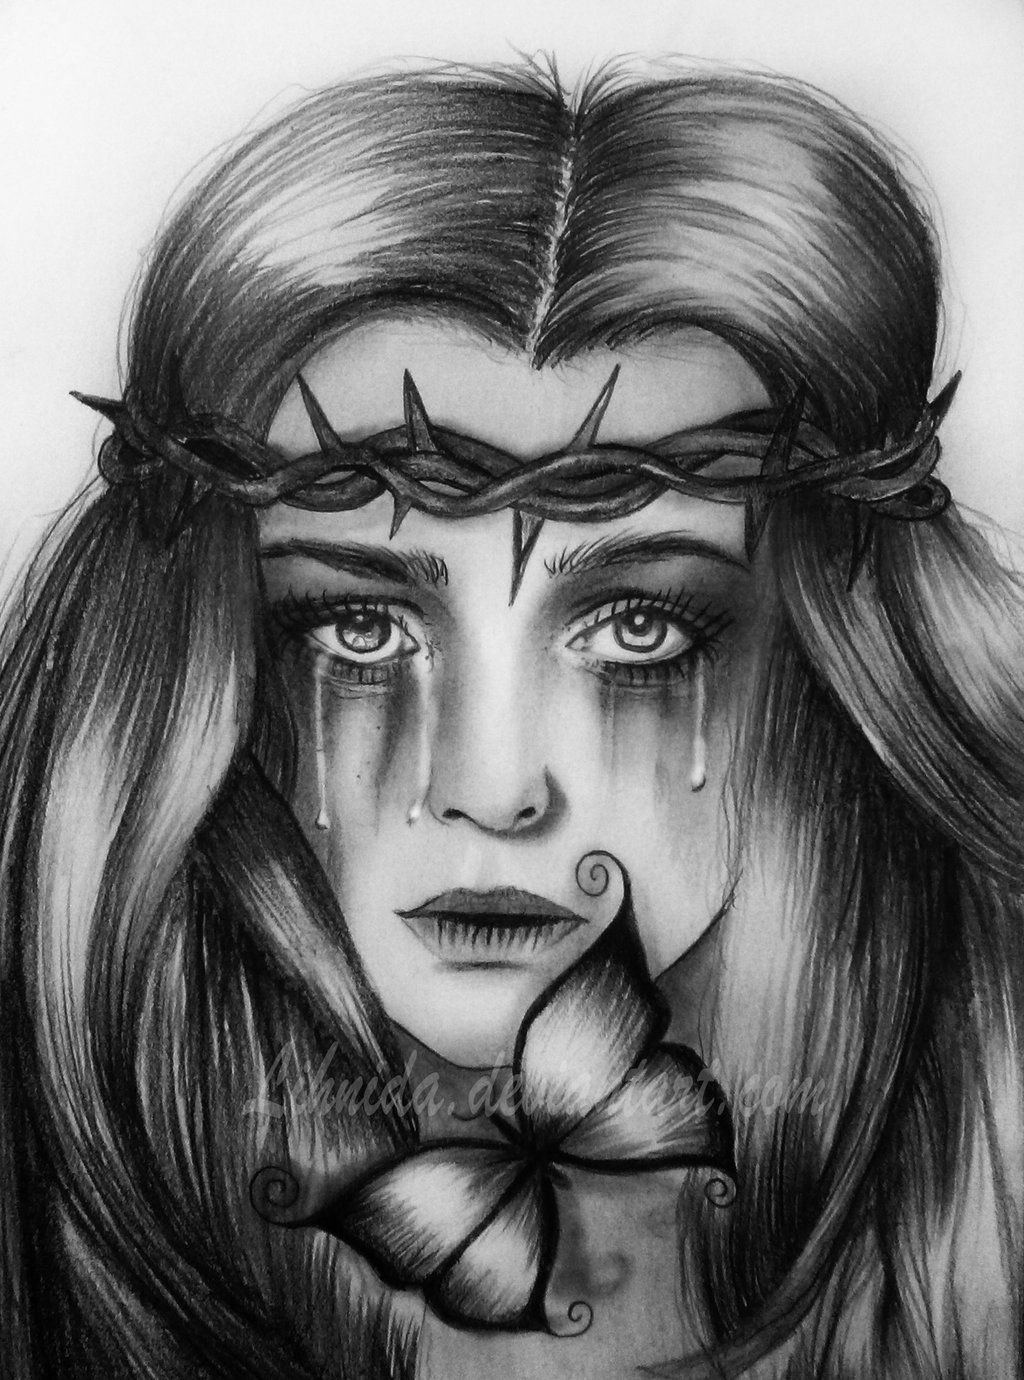 Drawing Of A Girl Crying : drawing, crying